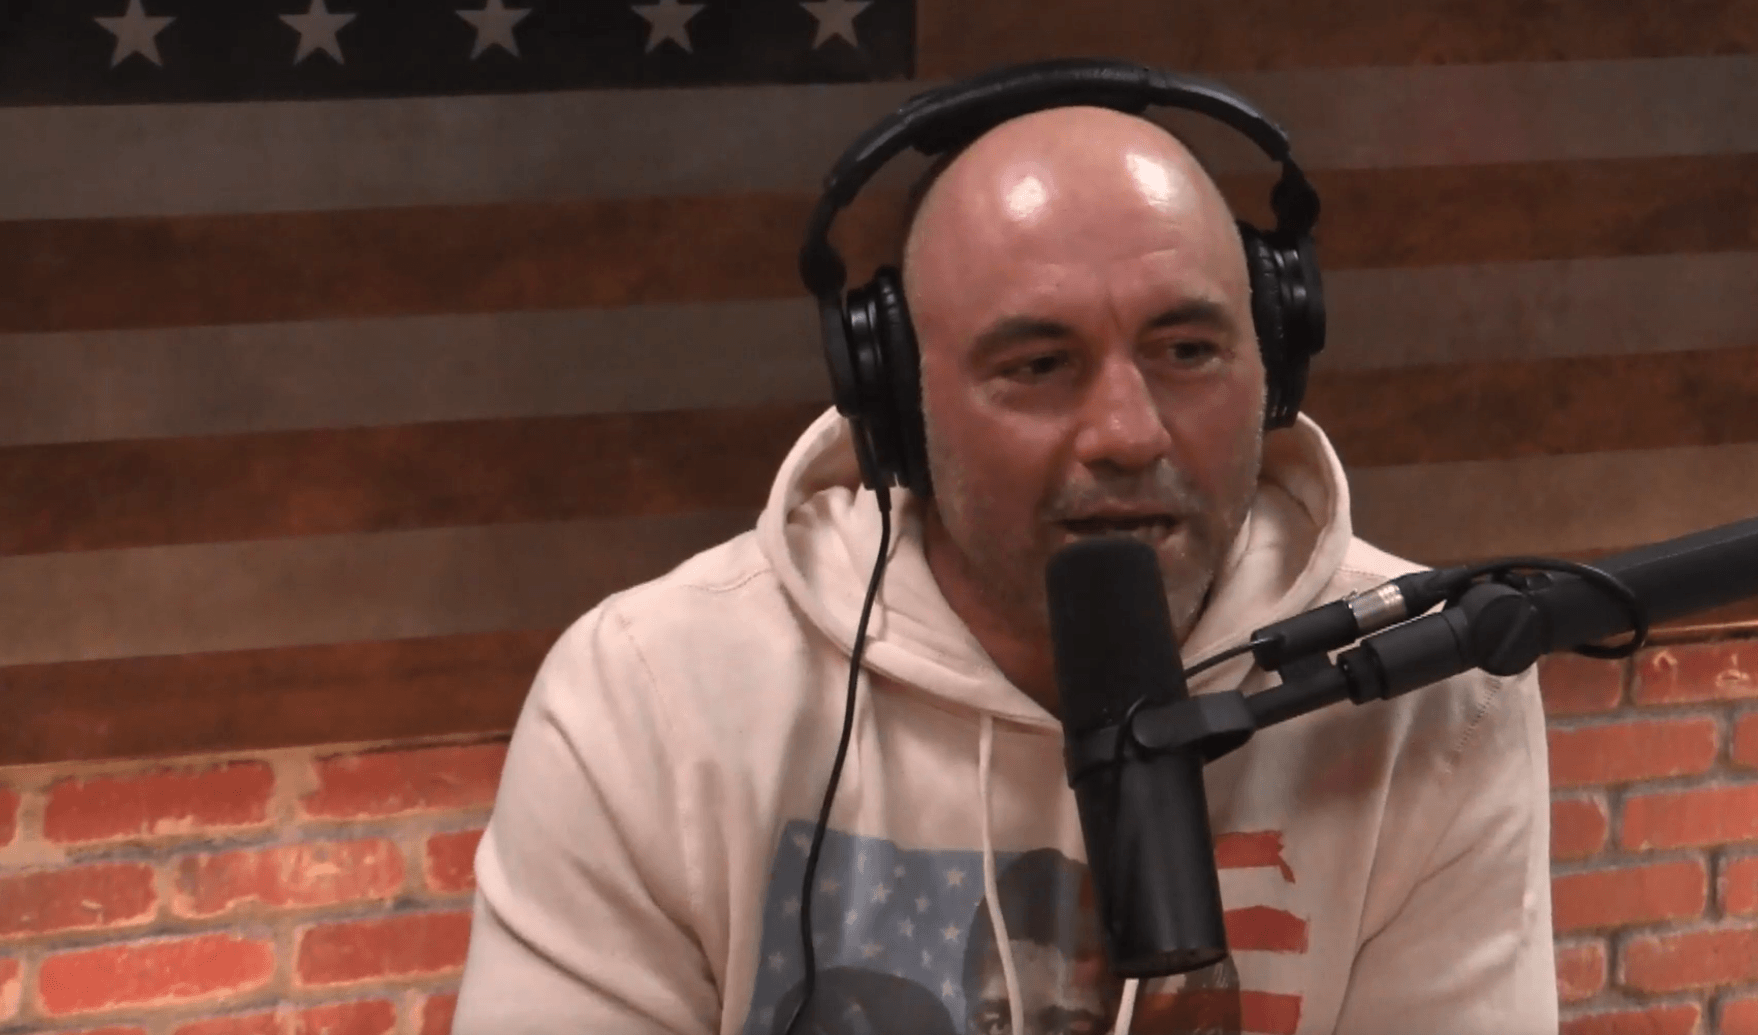 5ddf054f0 Joe Rogan is the Walter Cronkite of Our Era - Quillette